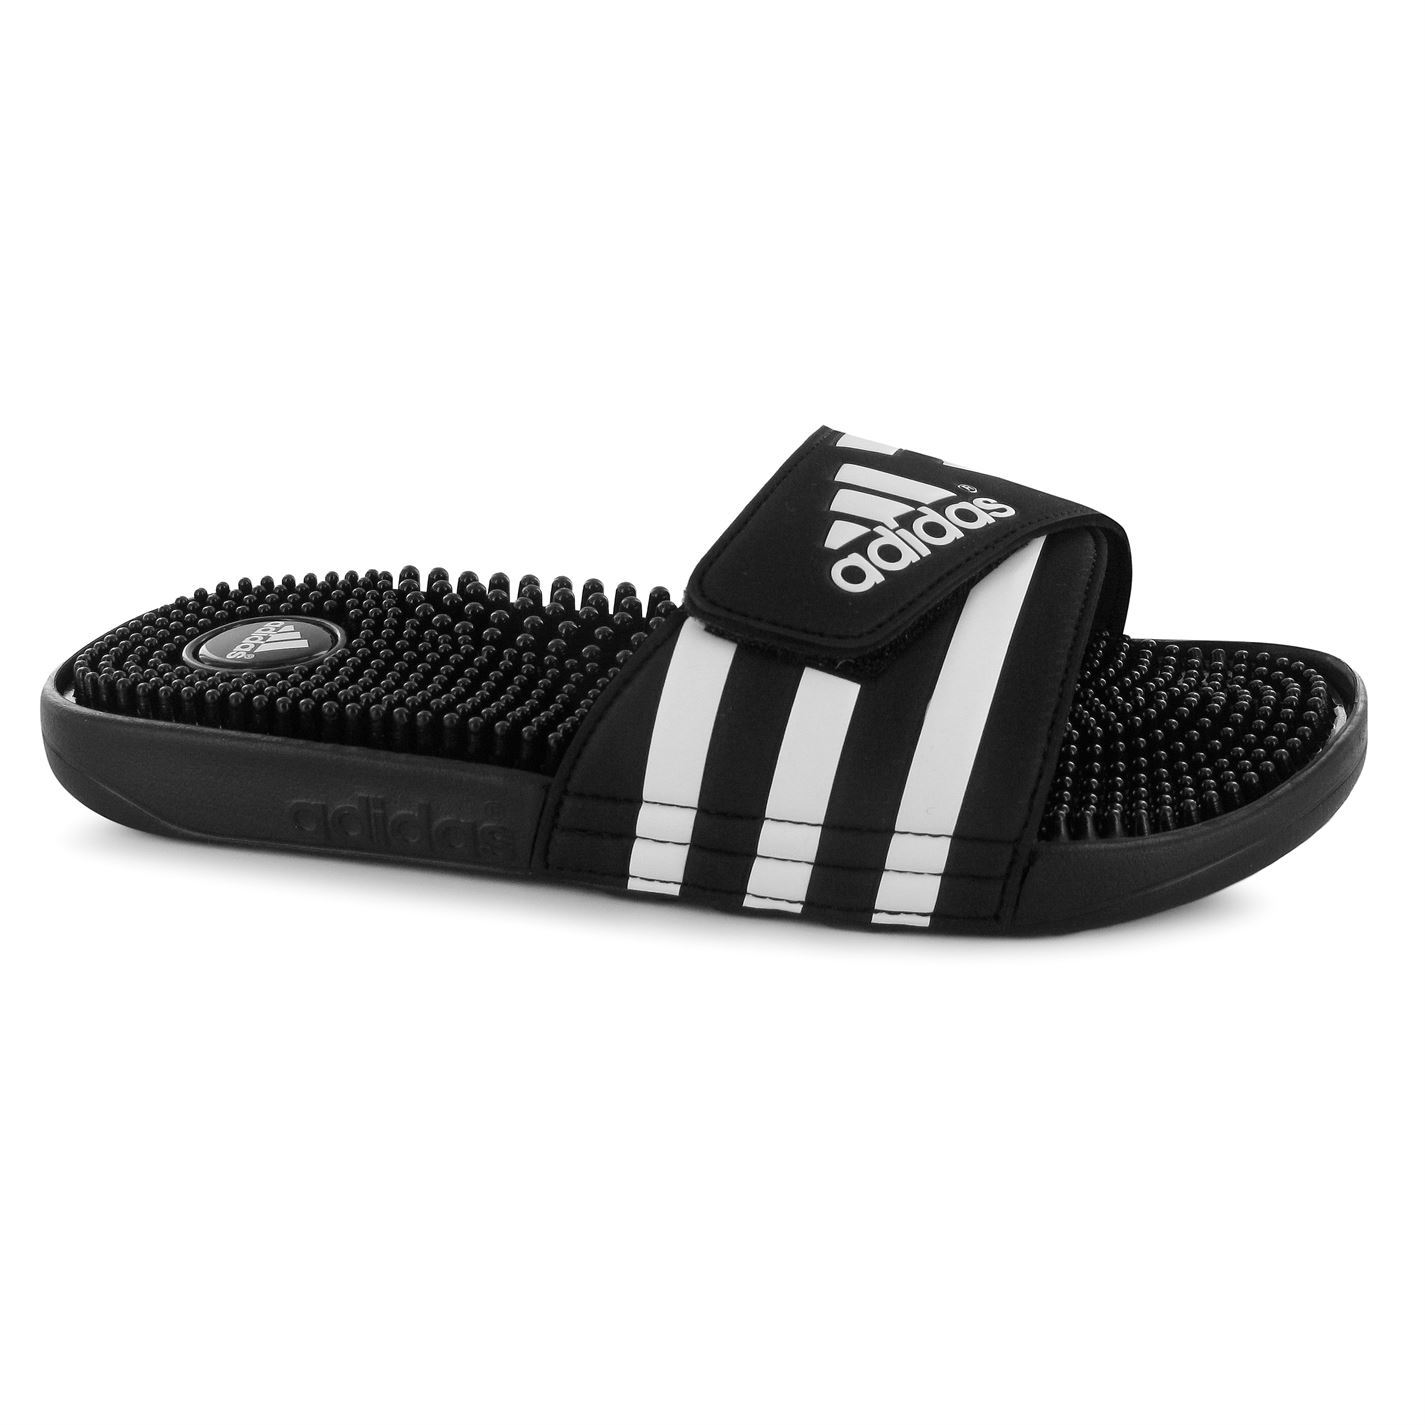 adidas-Mens-Adissage-Slides-Sandals-Massage-Footbed-Summer-